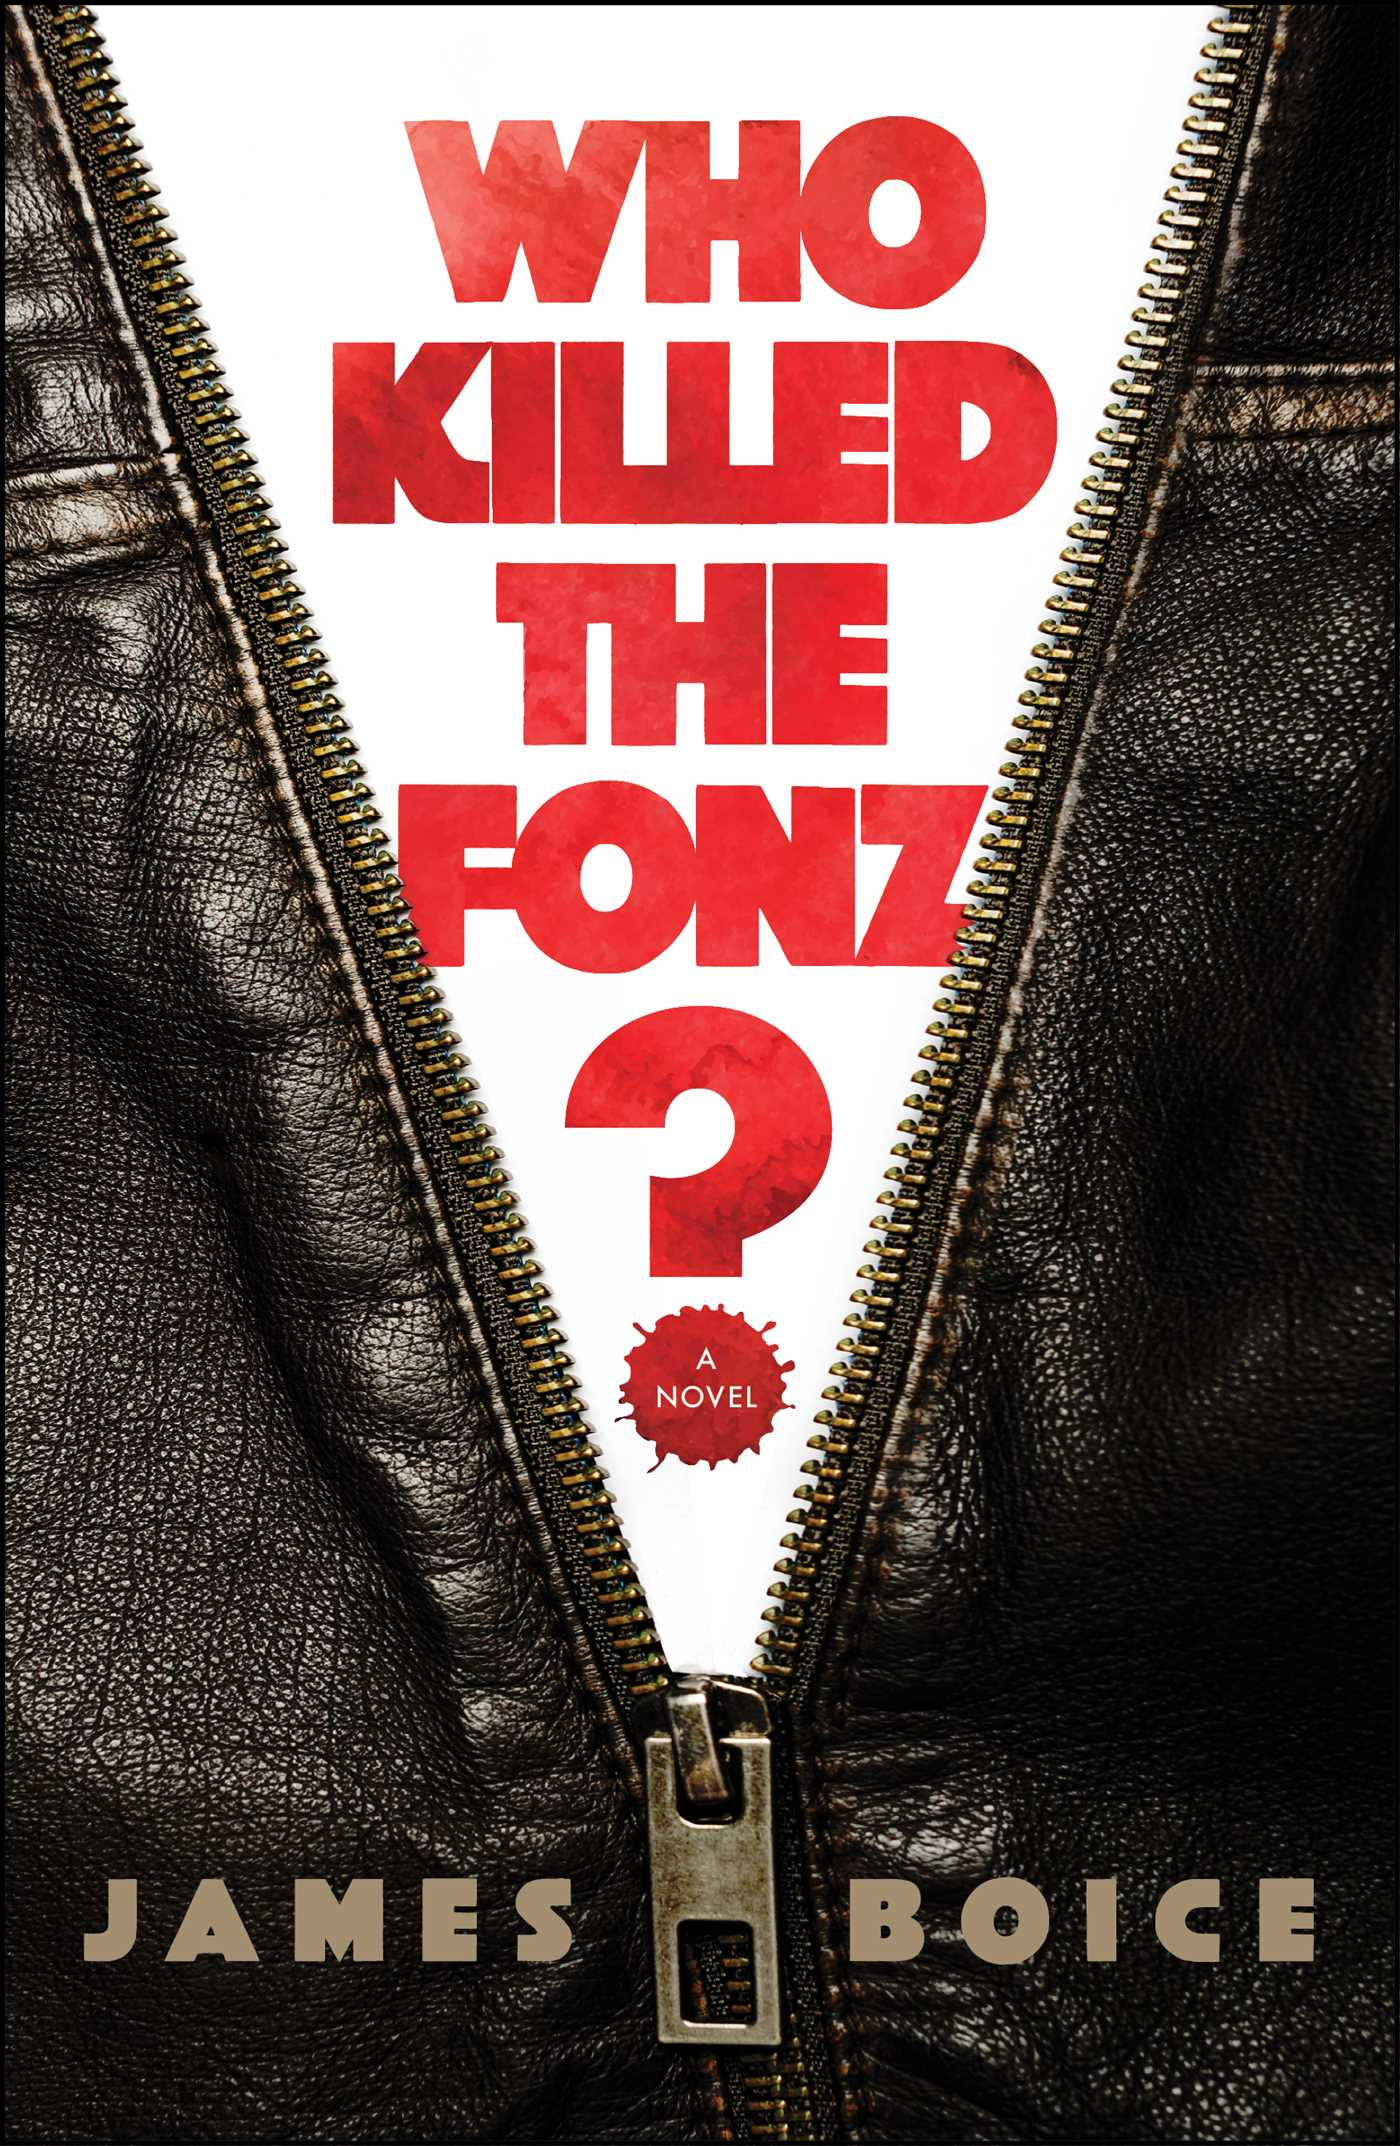 Who killed the fonz 9781501196881 hr